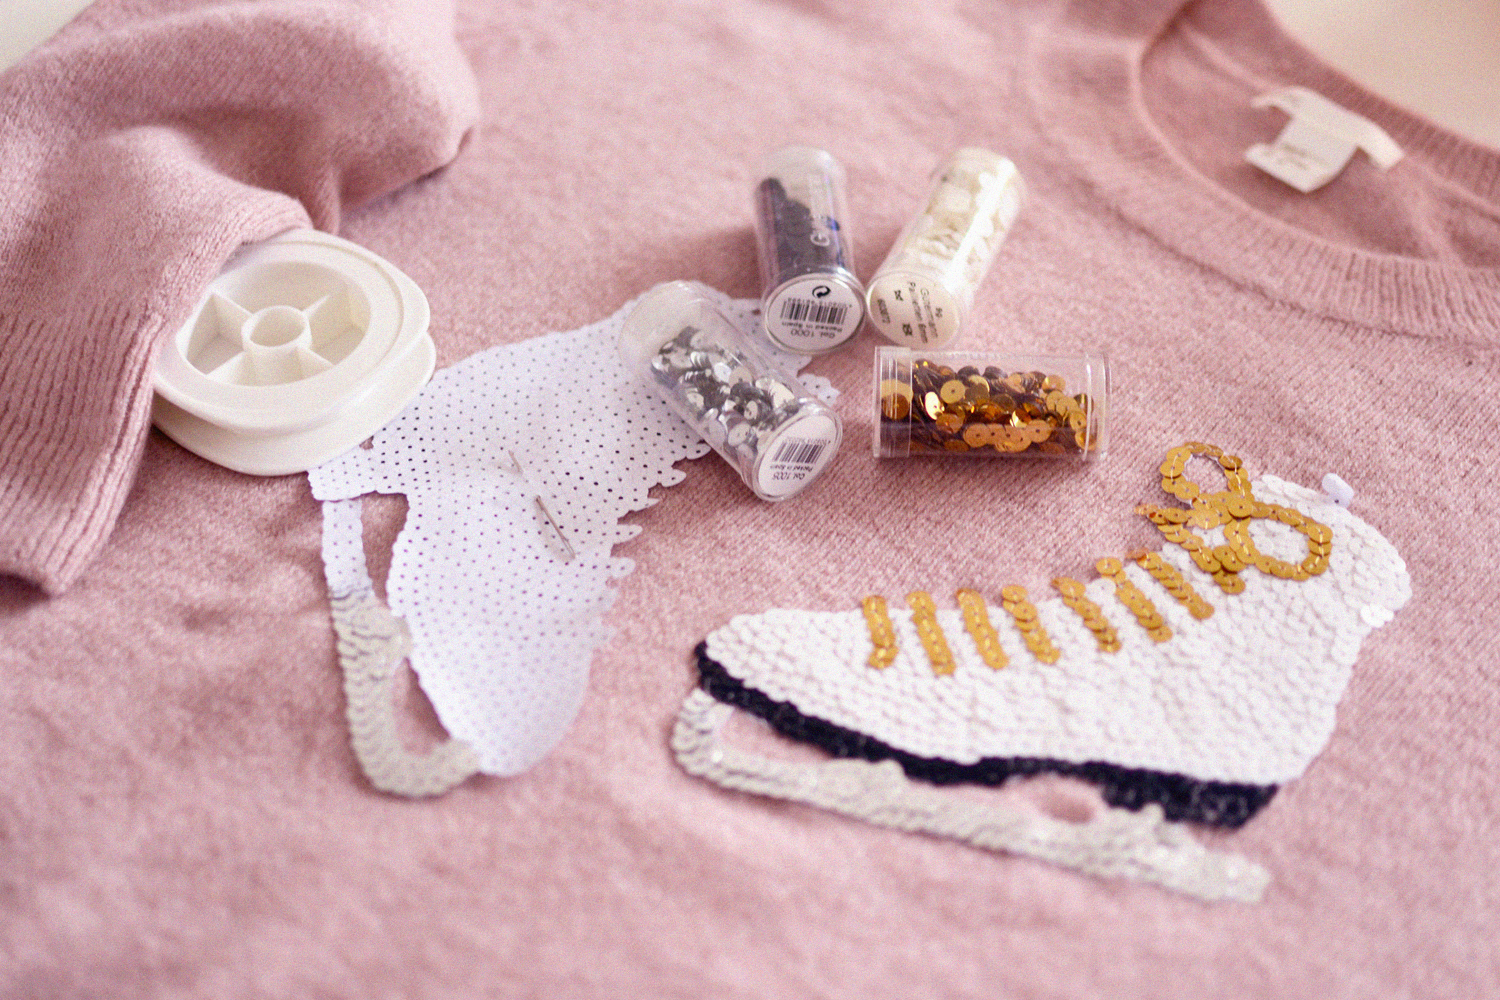 Retromantisch DIY romantic fashion blog sequins pailletten lovertjes schaats skate embroidery retro borduren